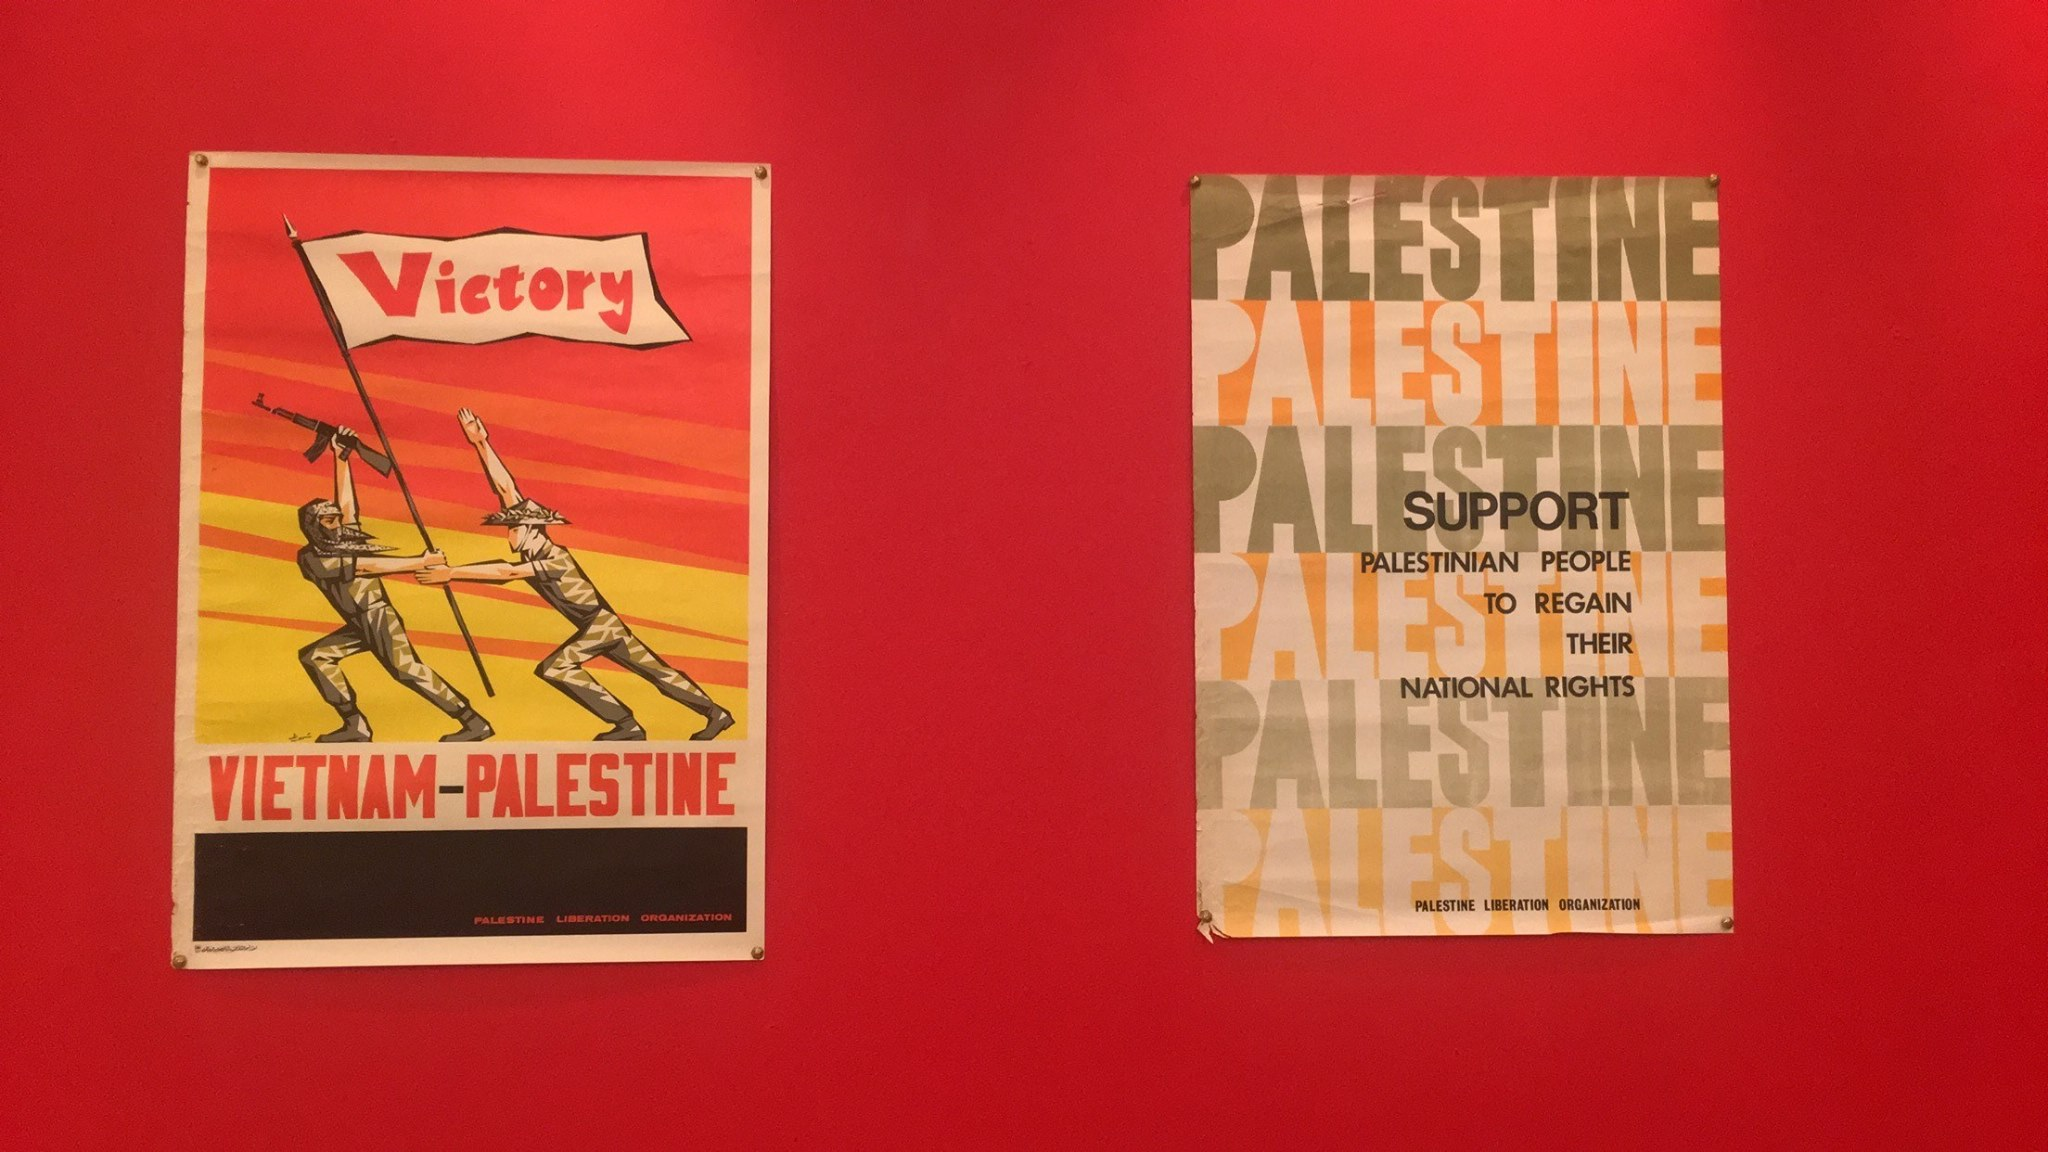 Gallery Al Quds: Historical Palestinian Posters From The 60s